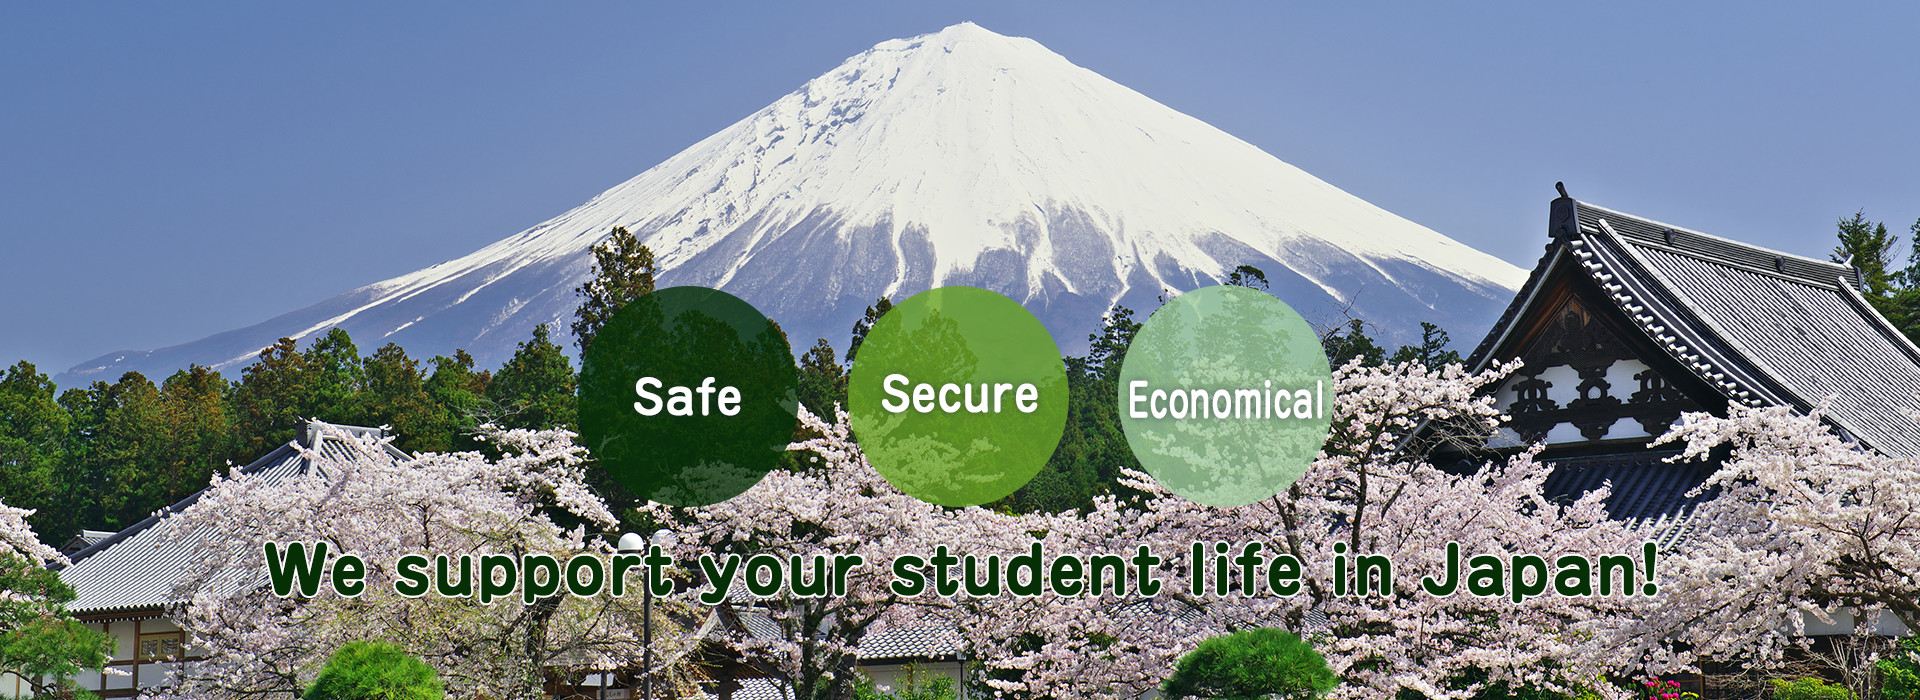 We support your student life in Japan!